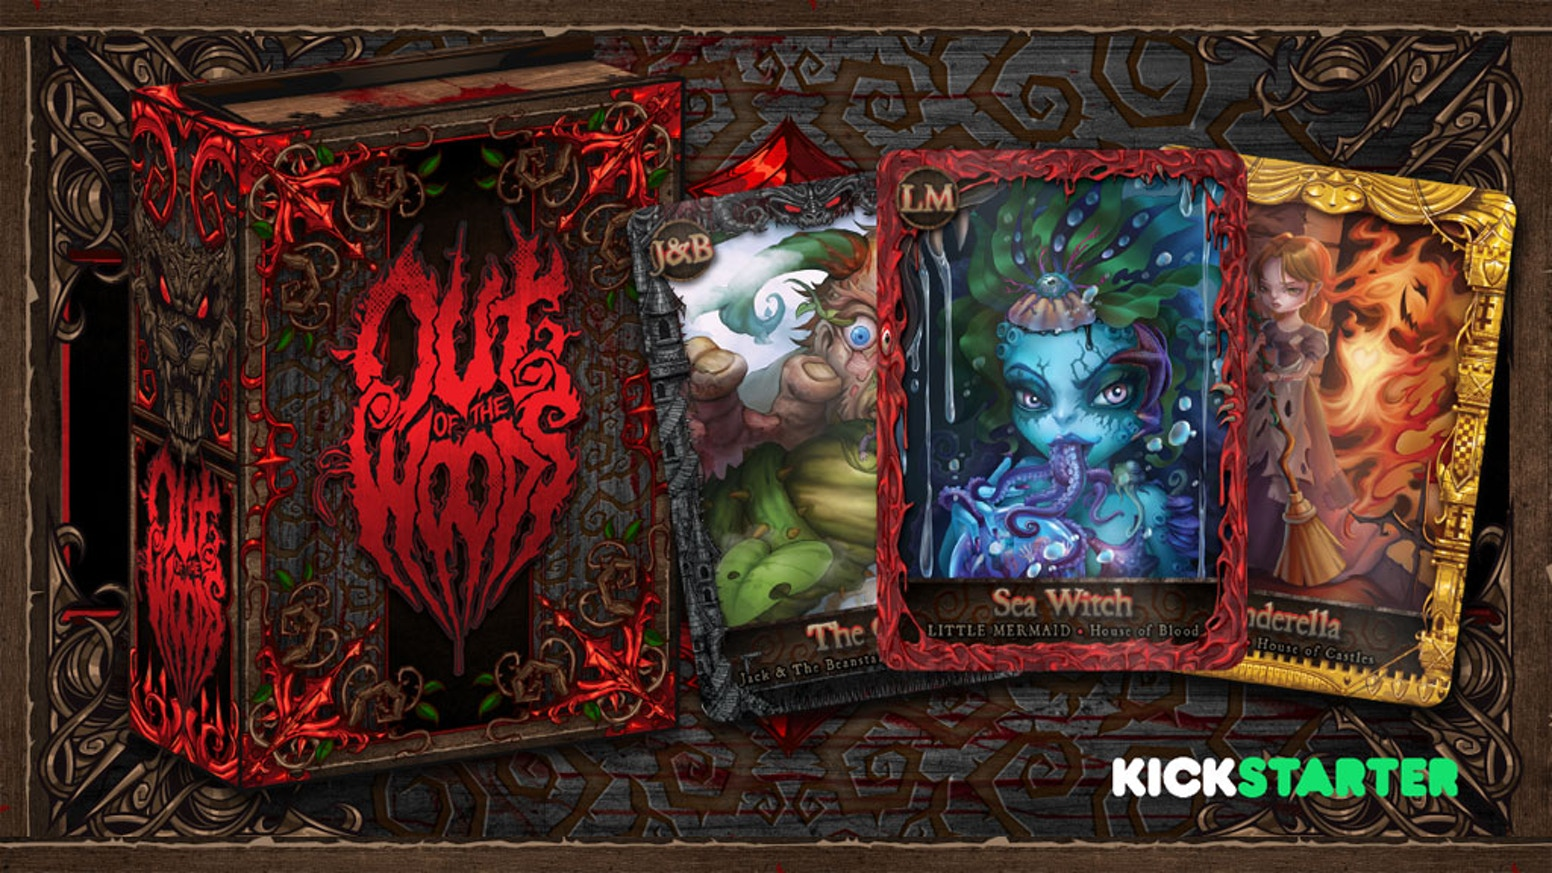 Out of the Woods is a collection of traditional fairy tales adapted into a Card Game, Illustrated Book, and compilation of Art Prints.